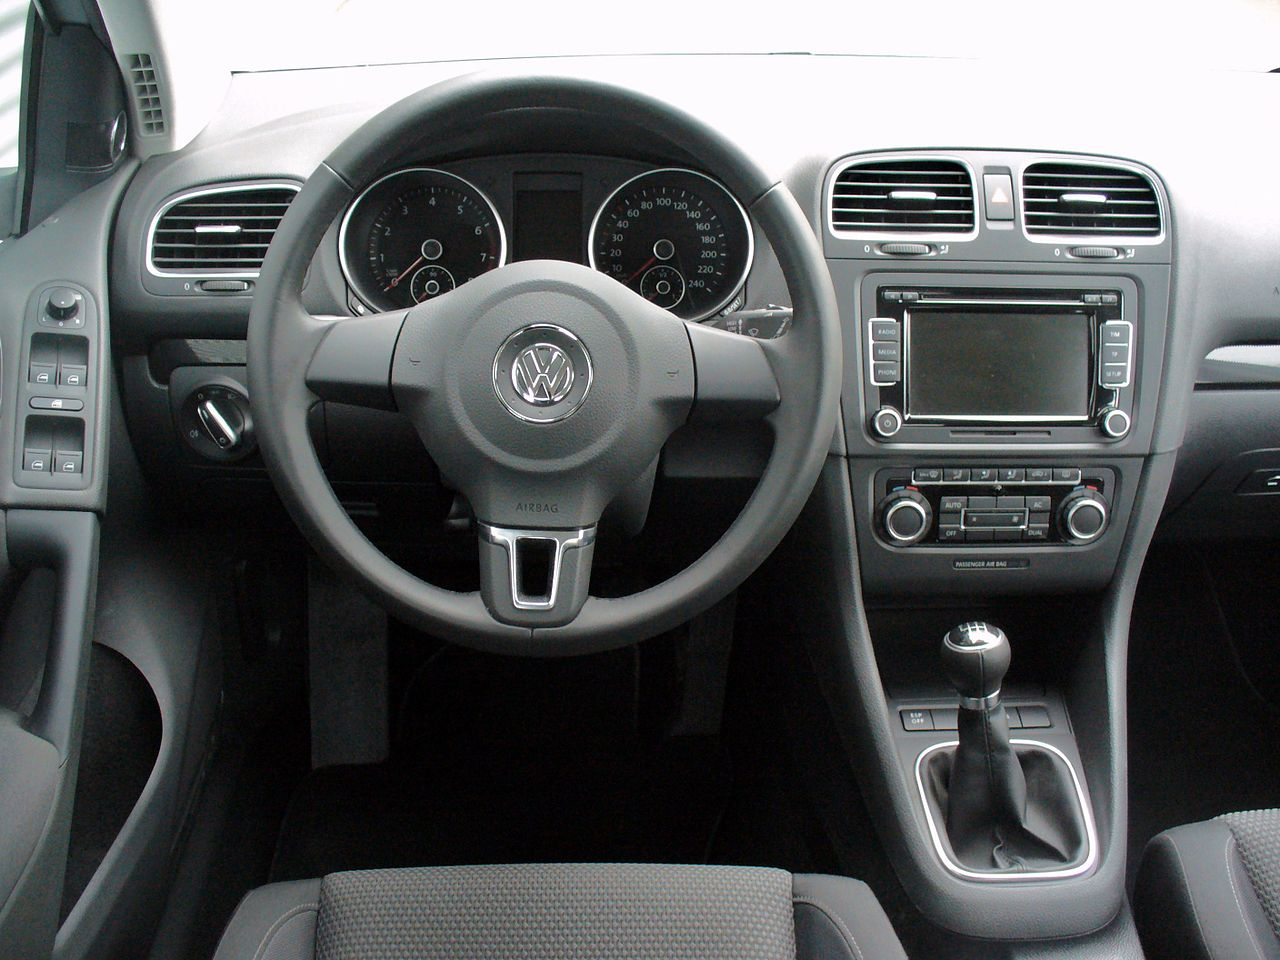 file vw golf vi 1 4 tsi 160ps comfortline reflexsilber interieur jpg wikimedia commons. Black Bedroom Furniture Sets. Home Design Ideas